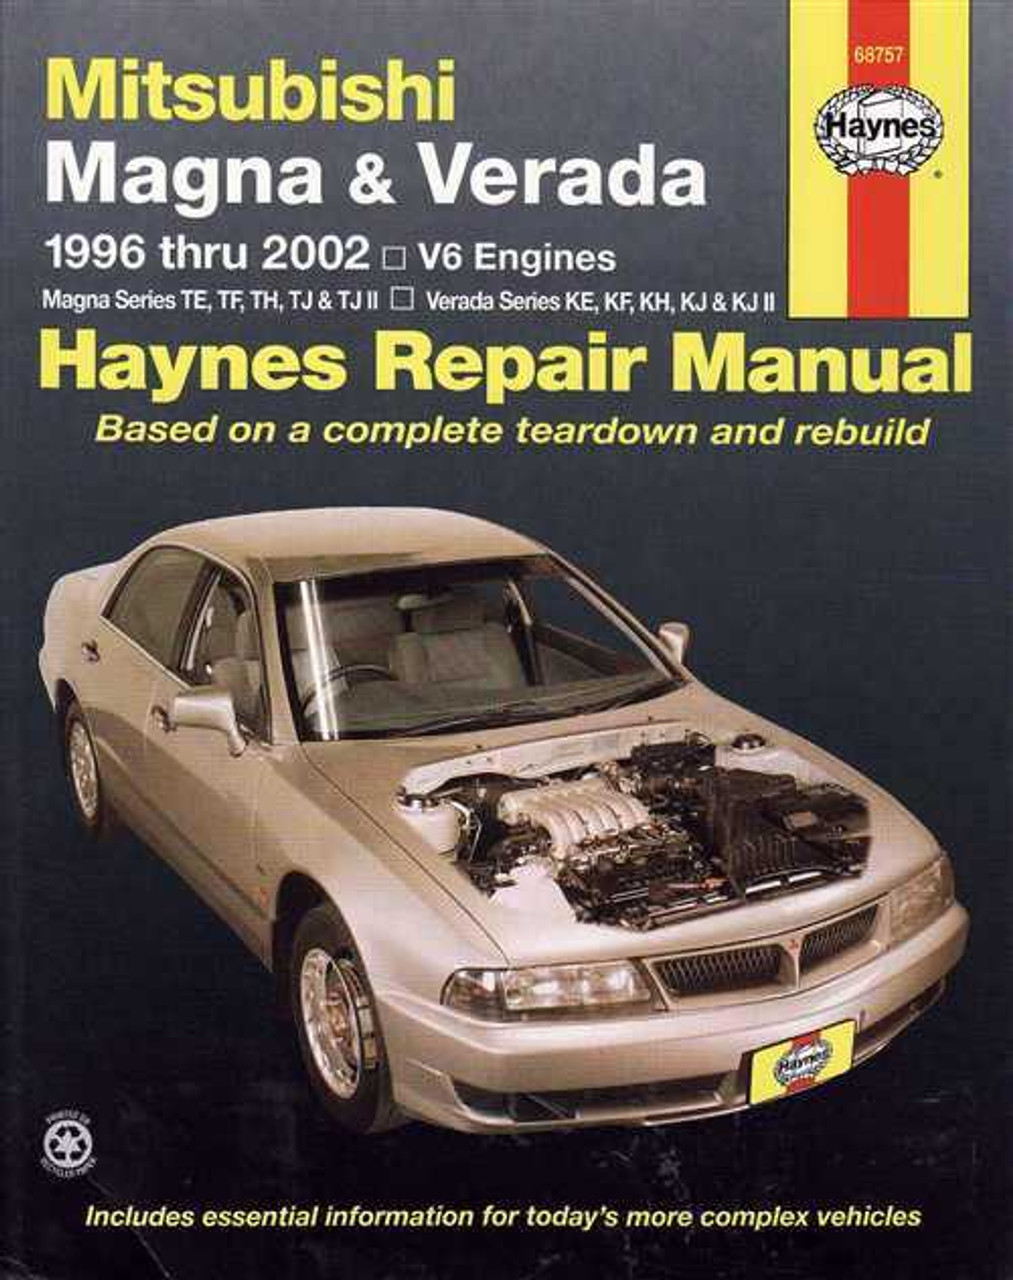 mitsubishi magna amp verada 1996 2002 workshop manual rh automotobookshop com au mitsubishi verada owners manual mitsubishi magna repair manual free download